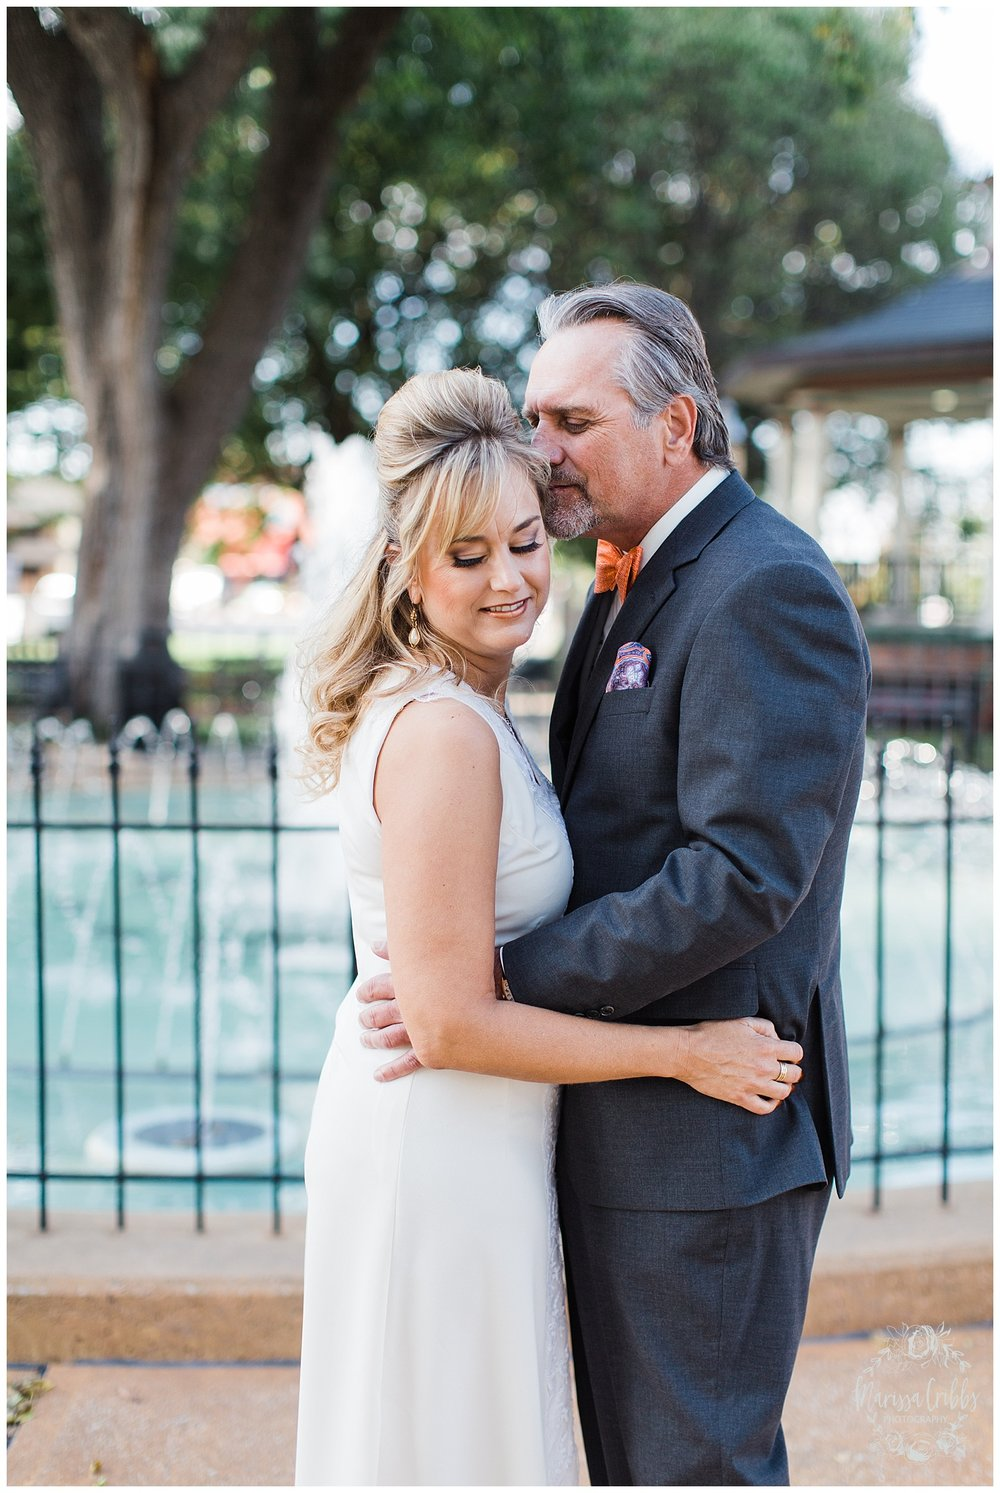 TOWN SQUARE PAOLA WEDDING | BRANDY & TERRY | MARISSA CRIBBS PHOTOGRAPHY_3093.jpg